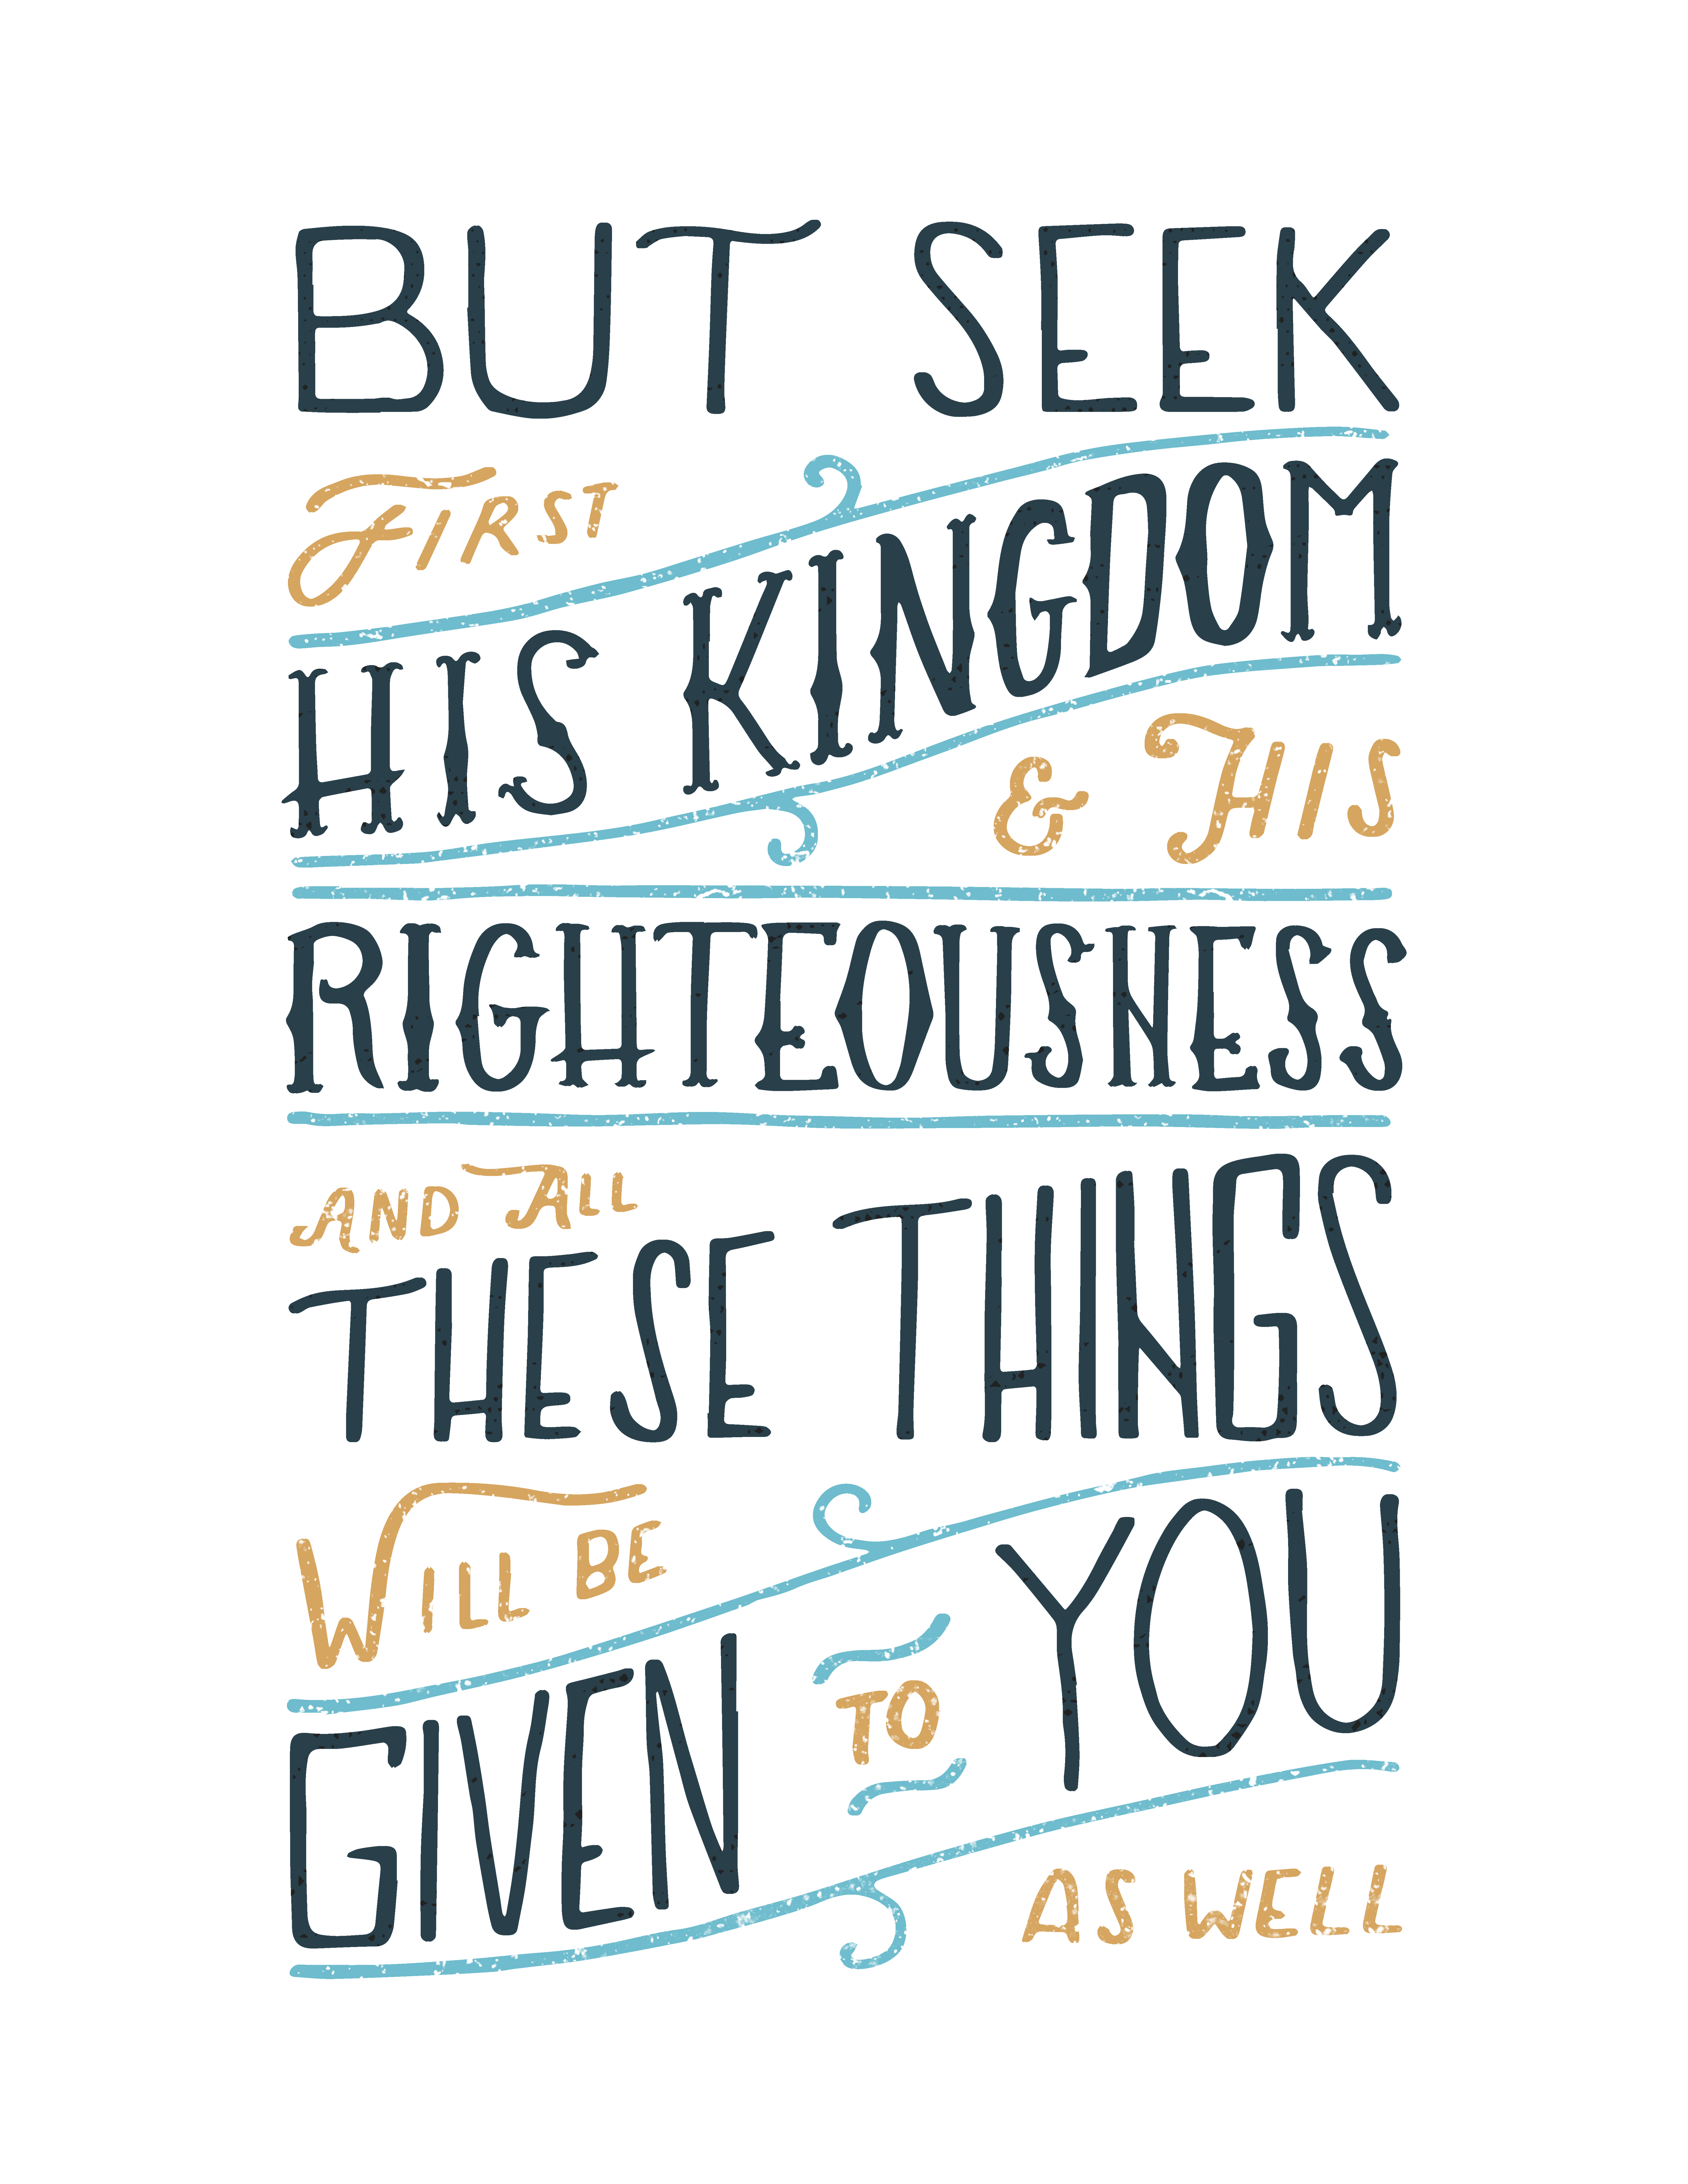 Bible verse thanksgiving day clipart svg black and white stock Bible Verse' Sticker by Bethel Store | Pinterest | Righteousness ... svg black and white stock